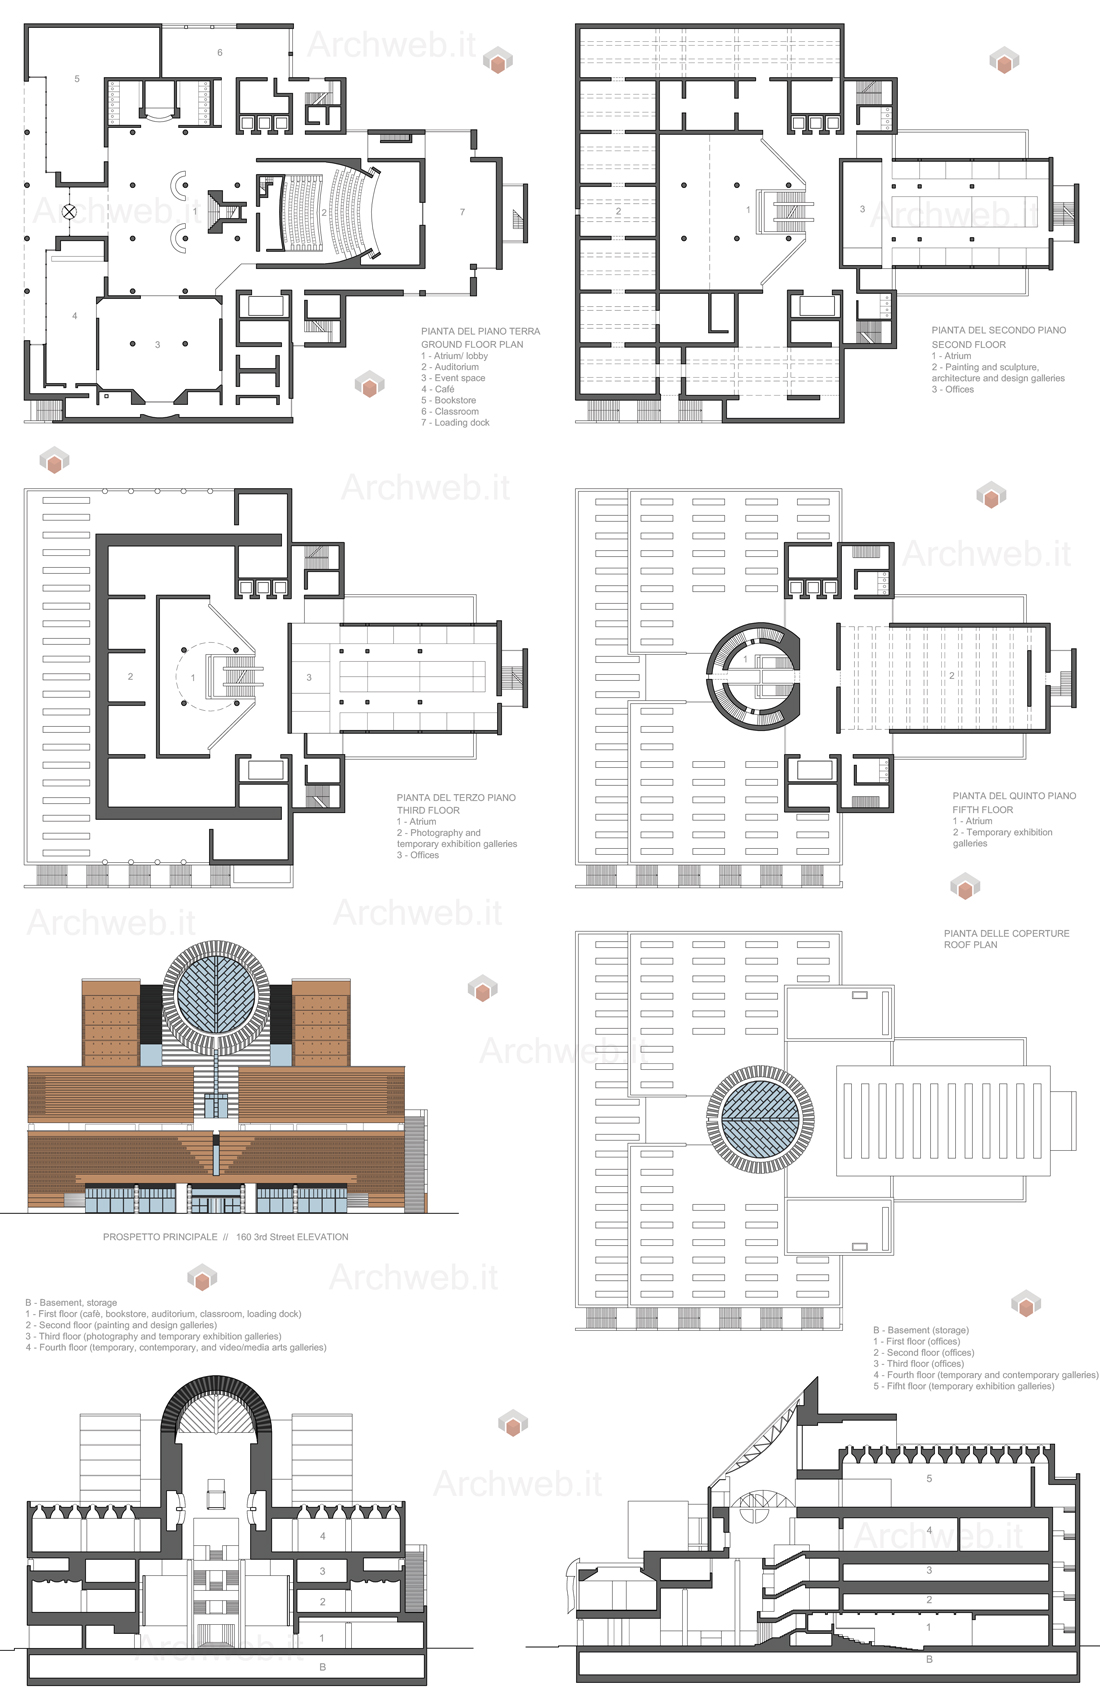 San francisco art museum dwg drawings for Moma arredi